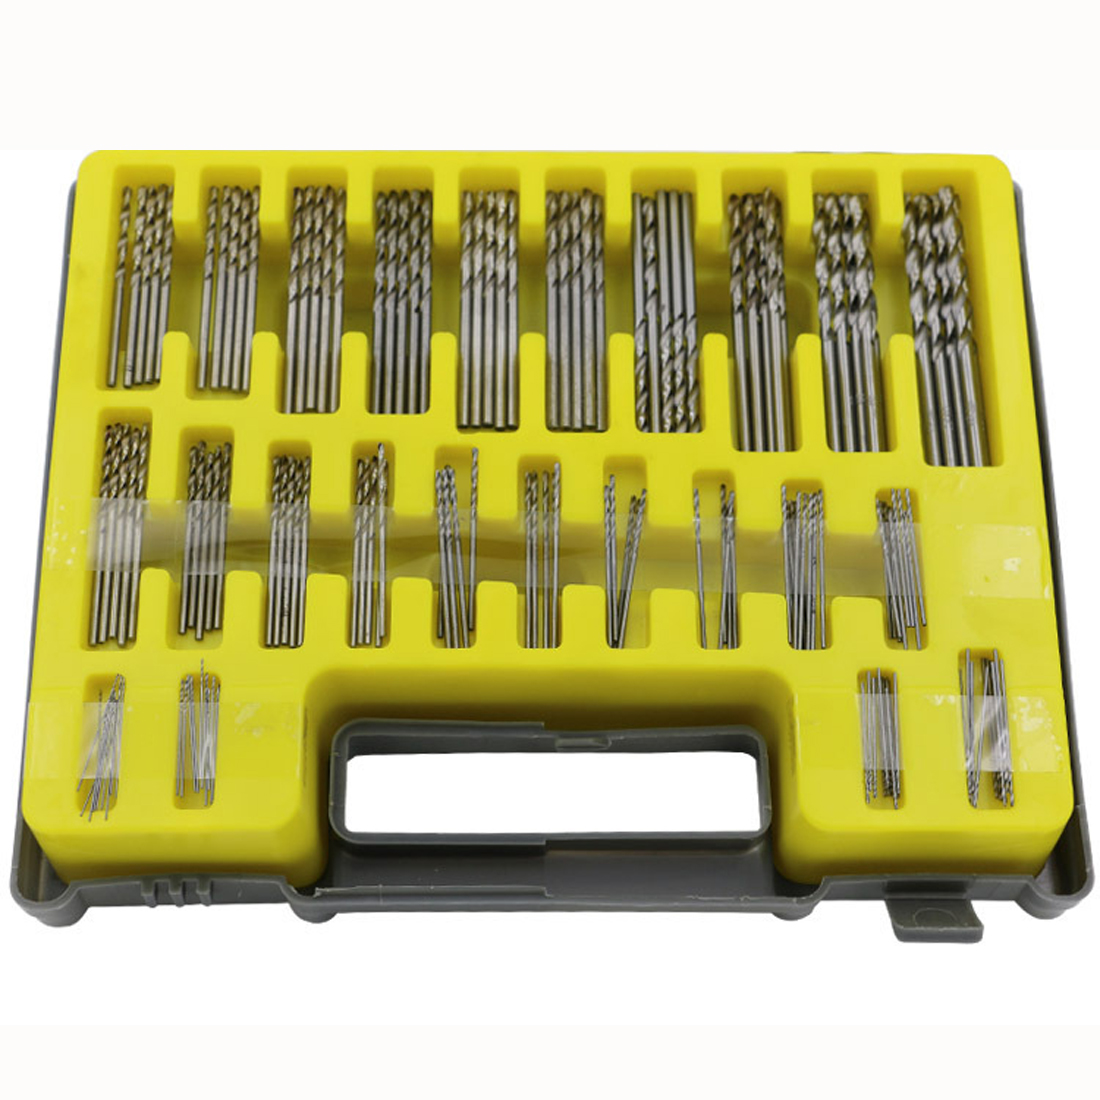 150PCS 0.4-3.2mm Drill Bit Set Small Precision With Carry Case Plastic Box Mini HSS Hand Tools Twist Drill Kit Set new high quality 0 4mm 3 2mm 150pcs set mini twist drill bit kit hss micro precision twist drill with carry case drilling tool